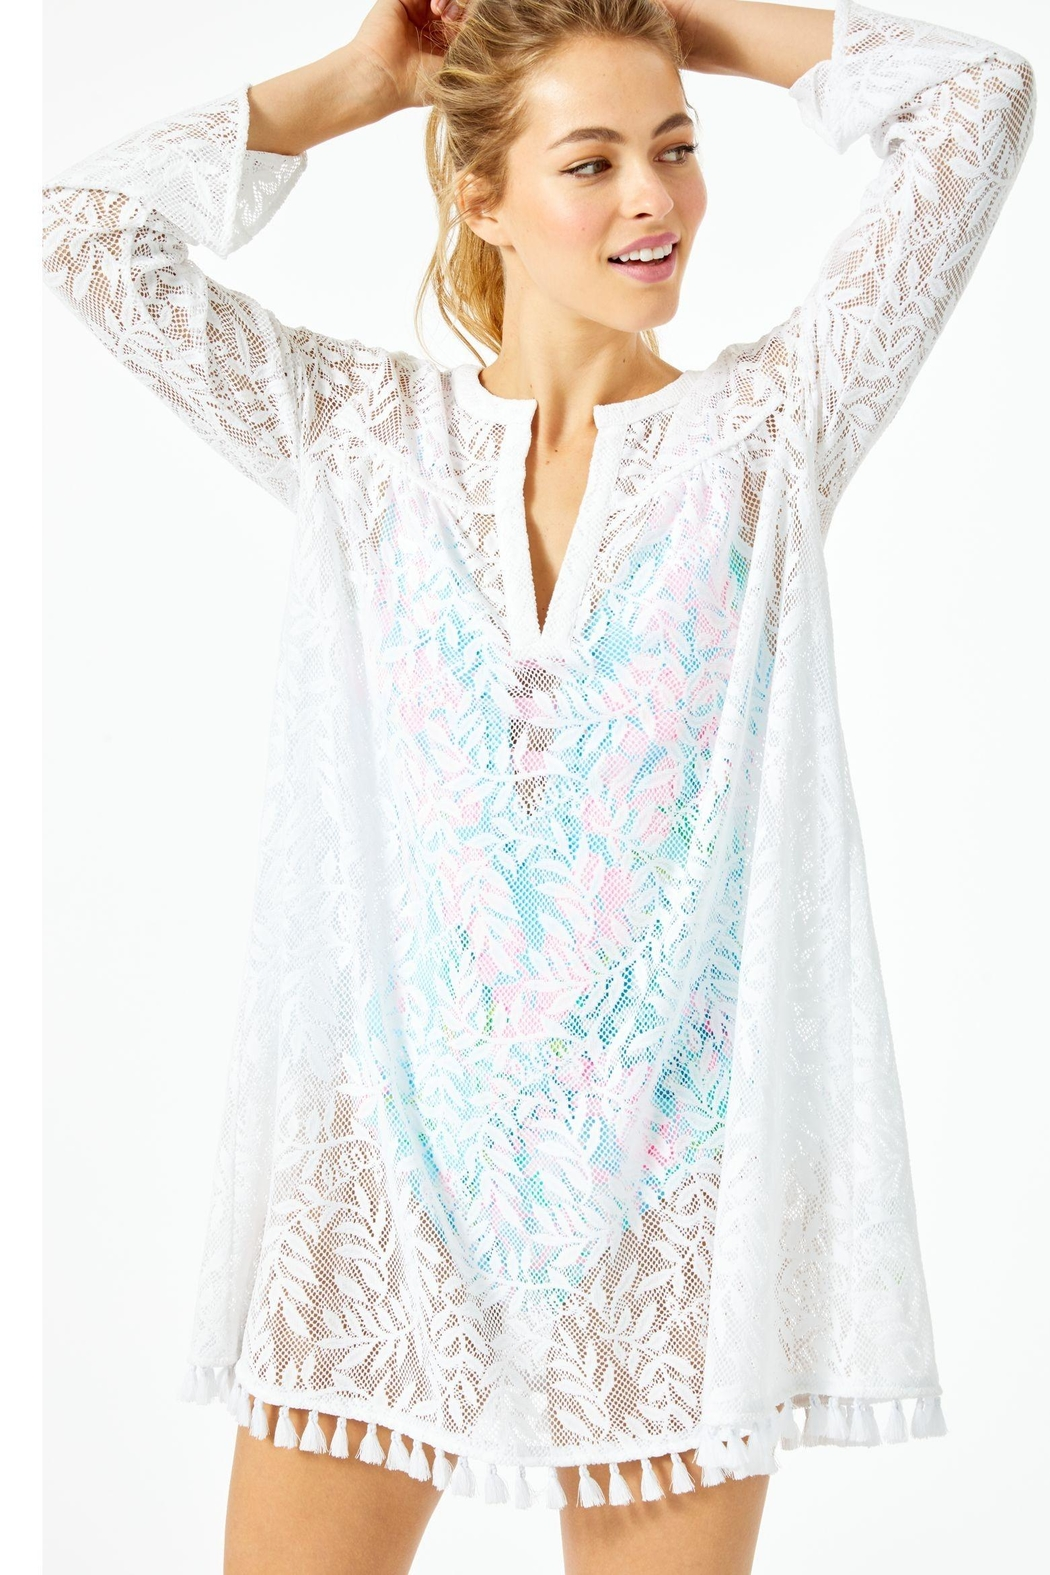 Lilly Pulitzer Kizzy Cover-Up - Main Image